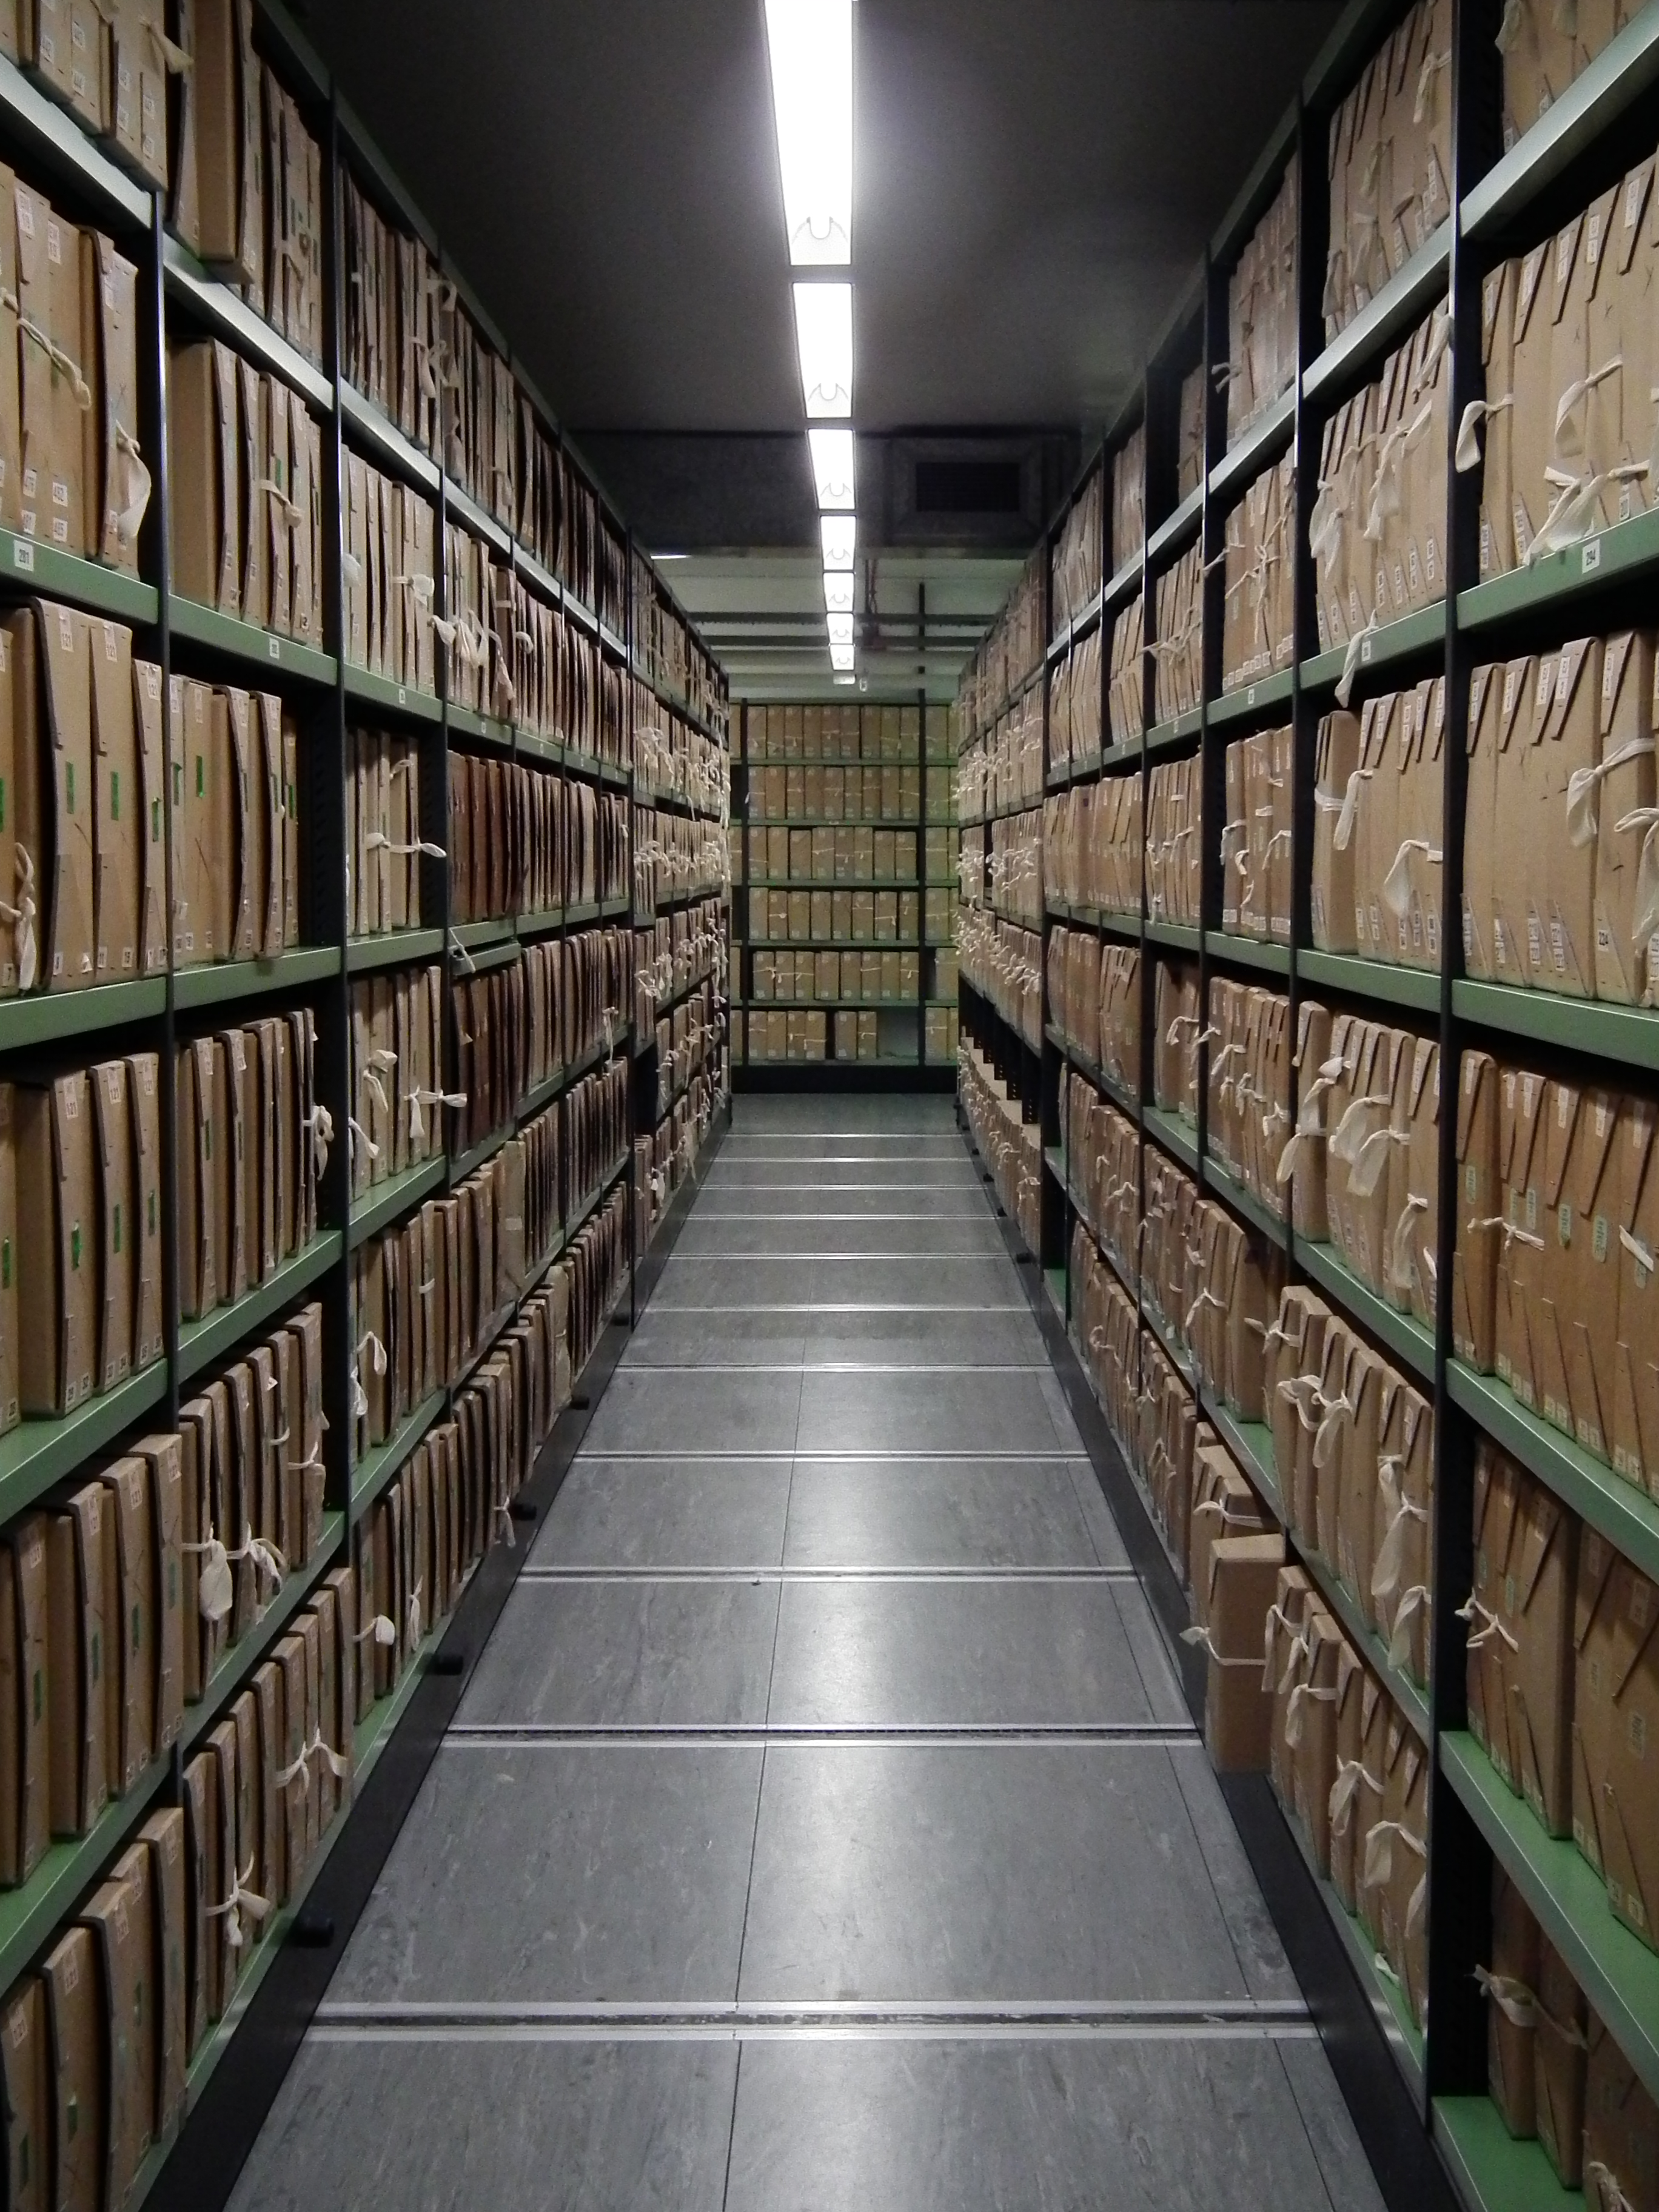 Photograph of the National Archives shelves.